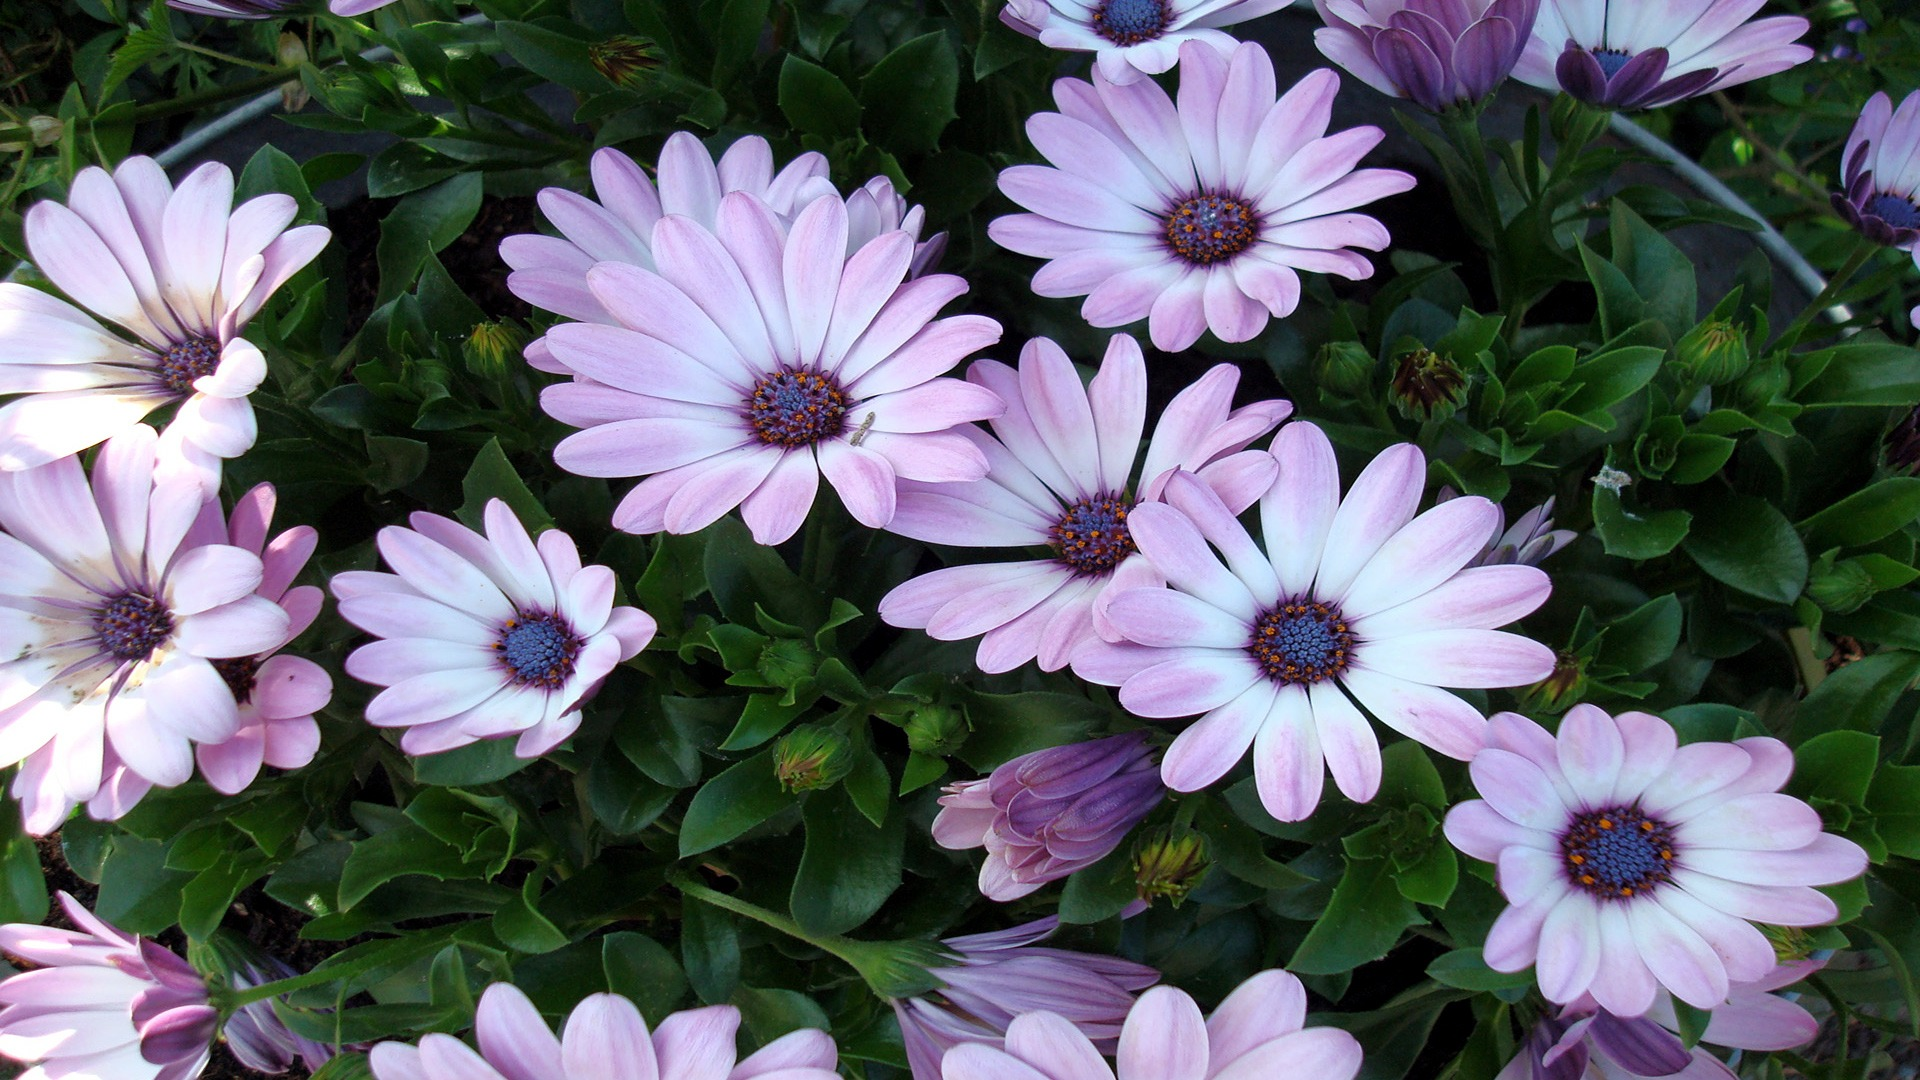 beautiful flowers wallpaper flowers nature wallpapers in jpg format